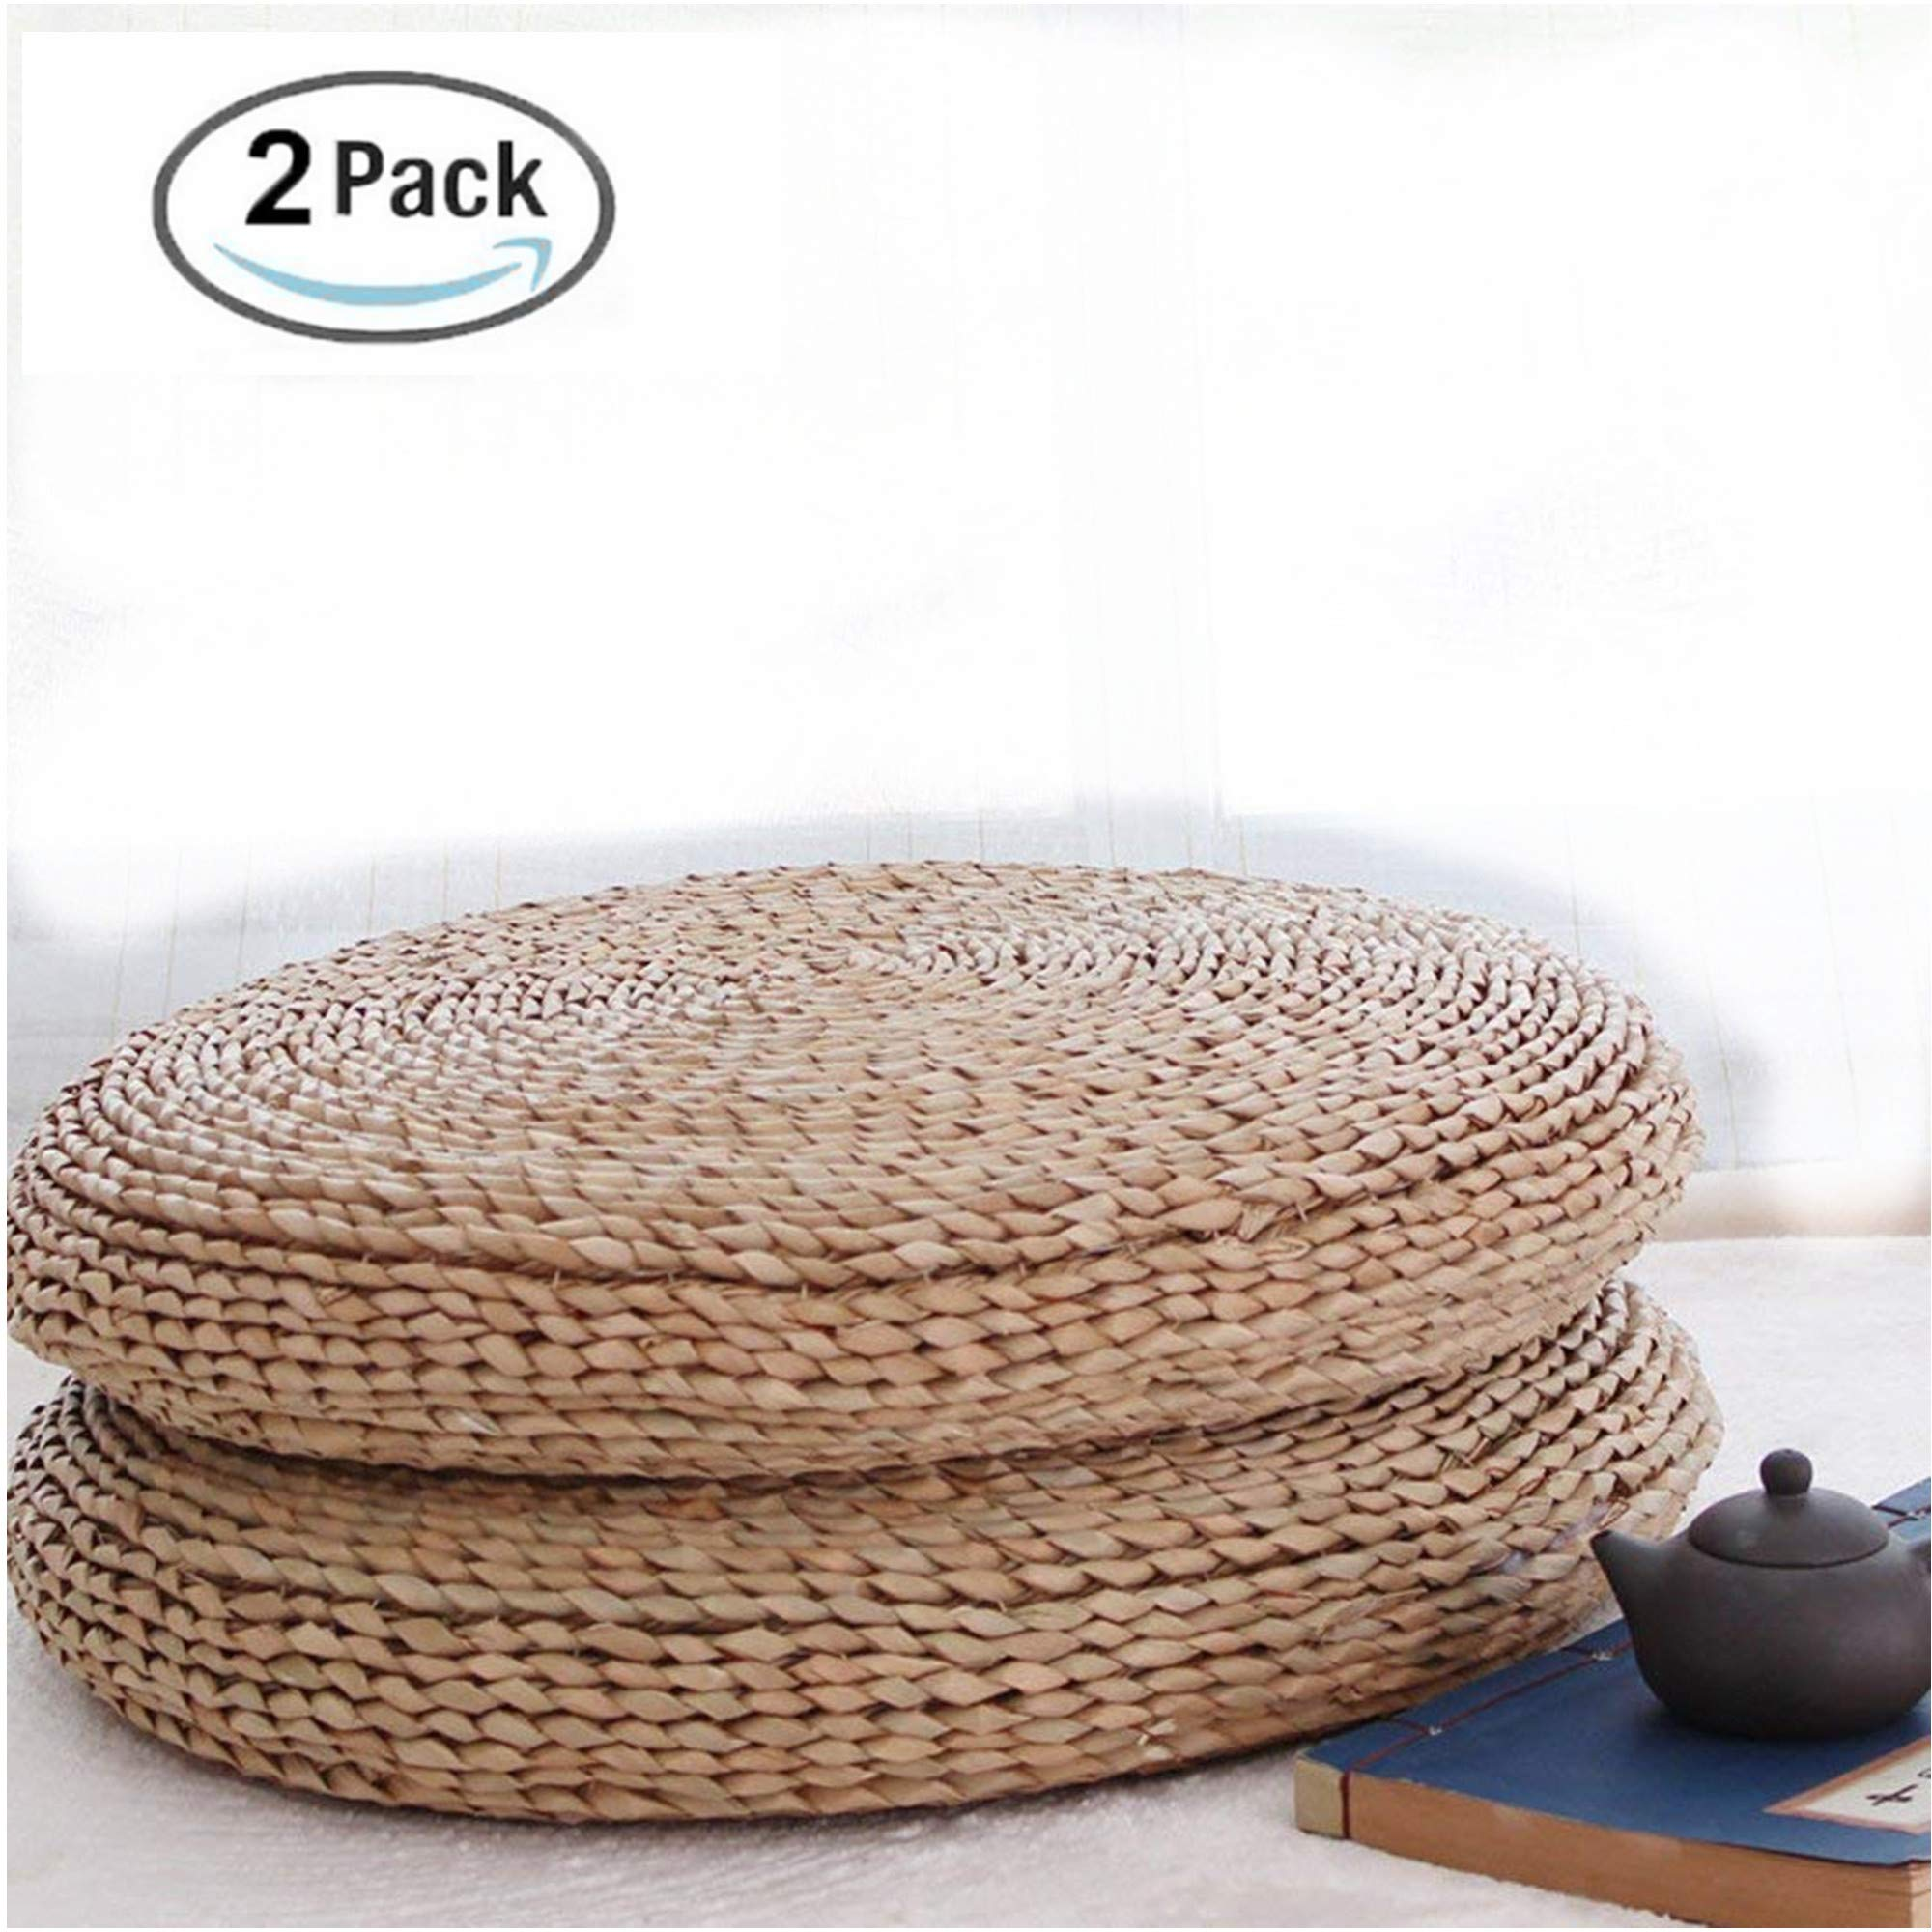 HUAWELL 2 Piece Japanese Traditional Tatami Round Braided Nature Handmade Straw Woven Seat Cushion Dia.15.75 inches